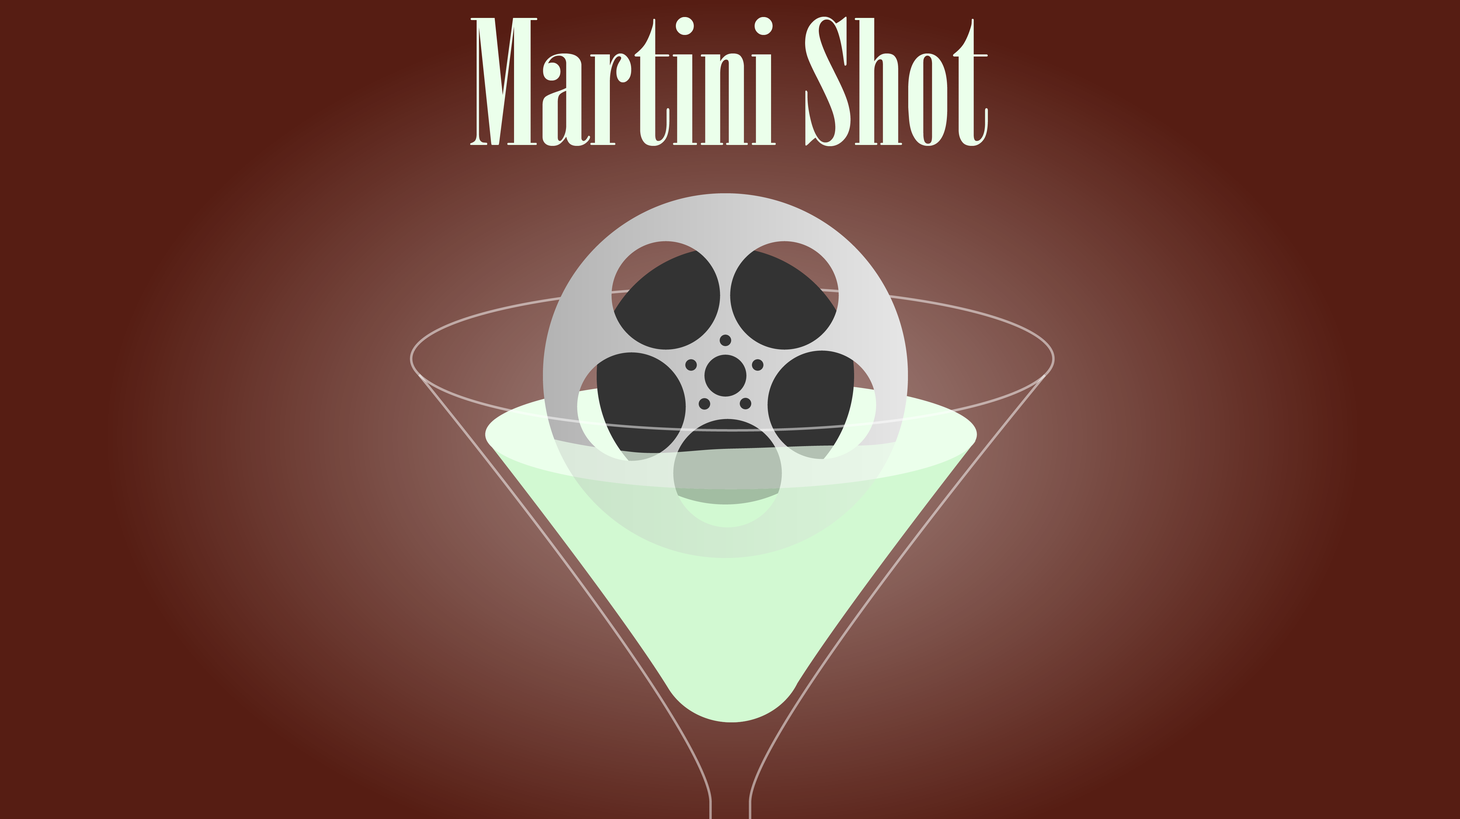 On today's Martini Shot I give some important and useful advice to one of the richest and smartest people in the world, a true business visionary, and I'm not even humble about it.